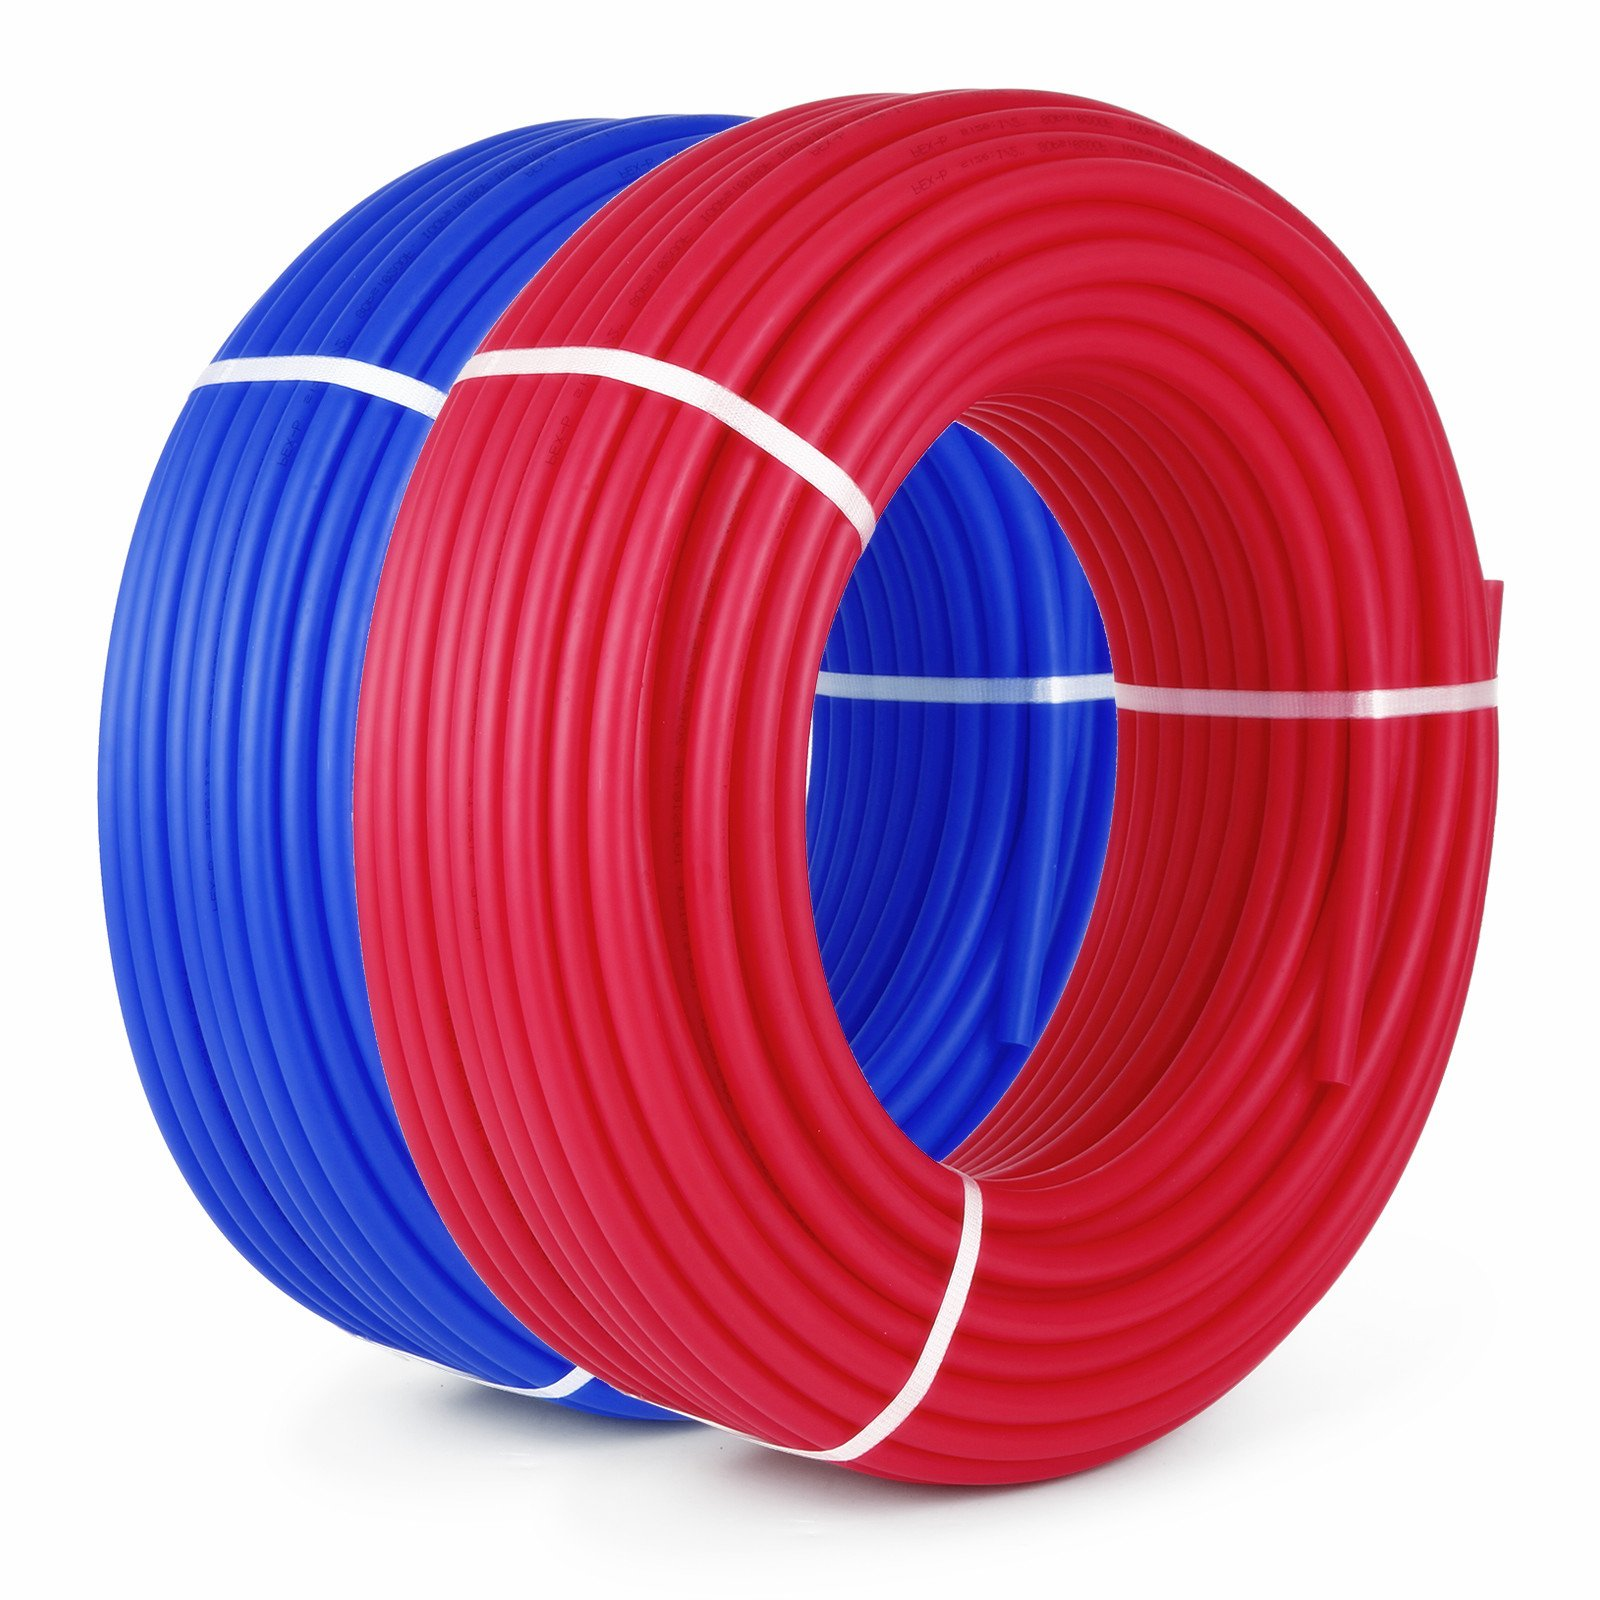 Popsport PEX Tubing 1/2 Inch PEX Potable Water Pipe 2 Rolls 300FT Non-Barrier Pex Tubing for Residential and Light Commercial Hot and Cold Water Plumbing Applications (2X300FT) by Popsport